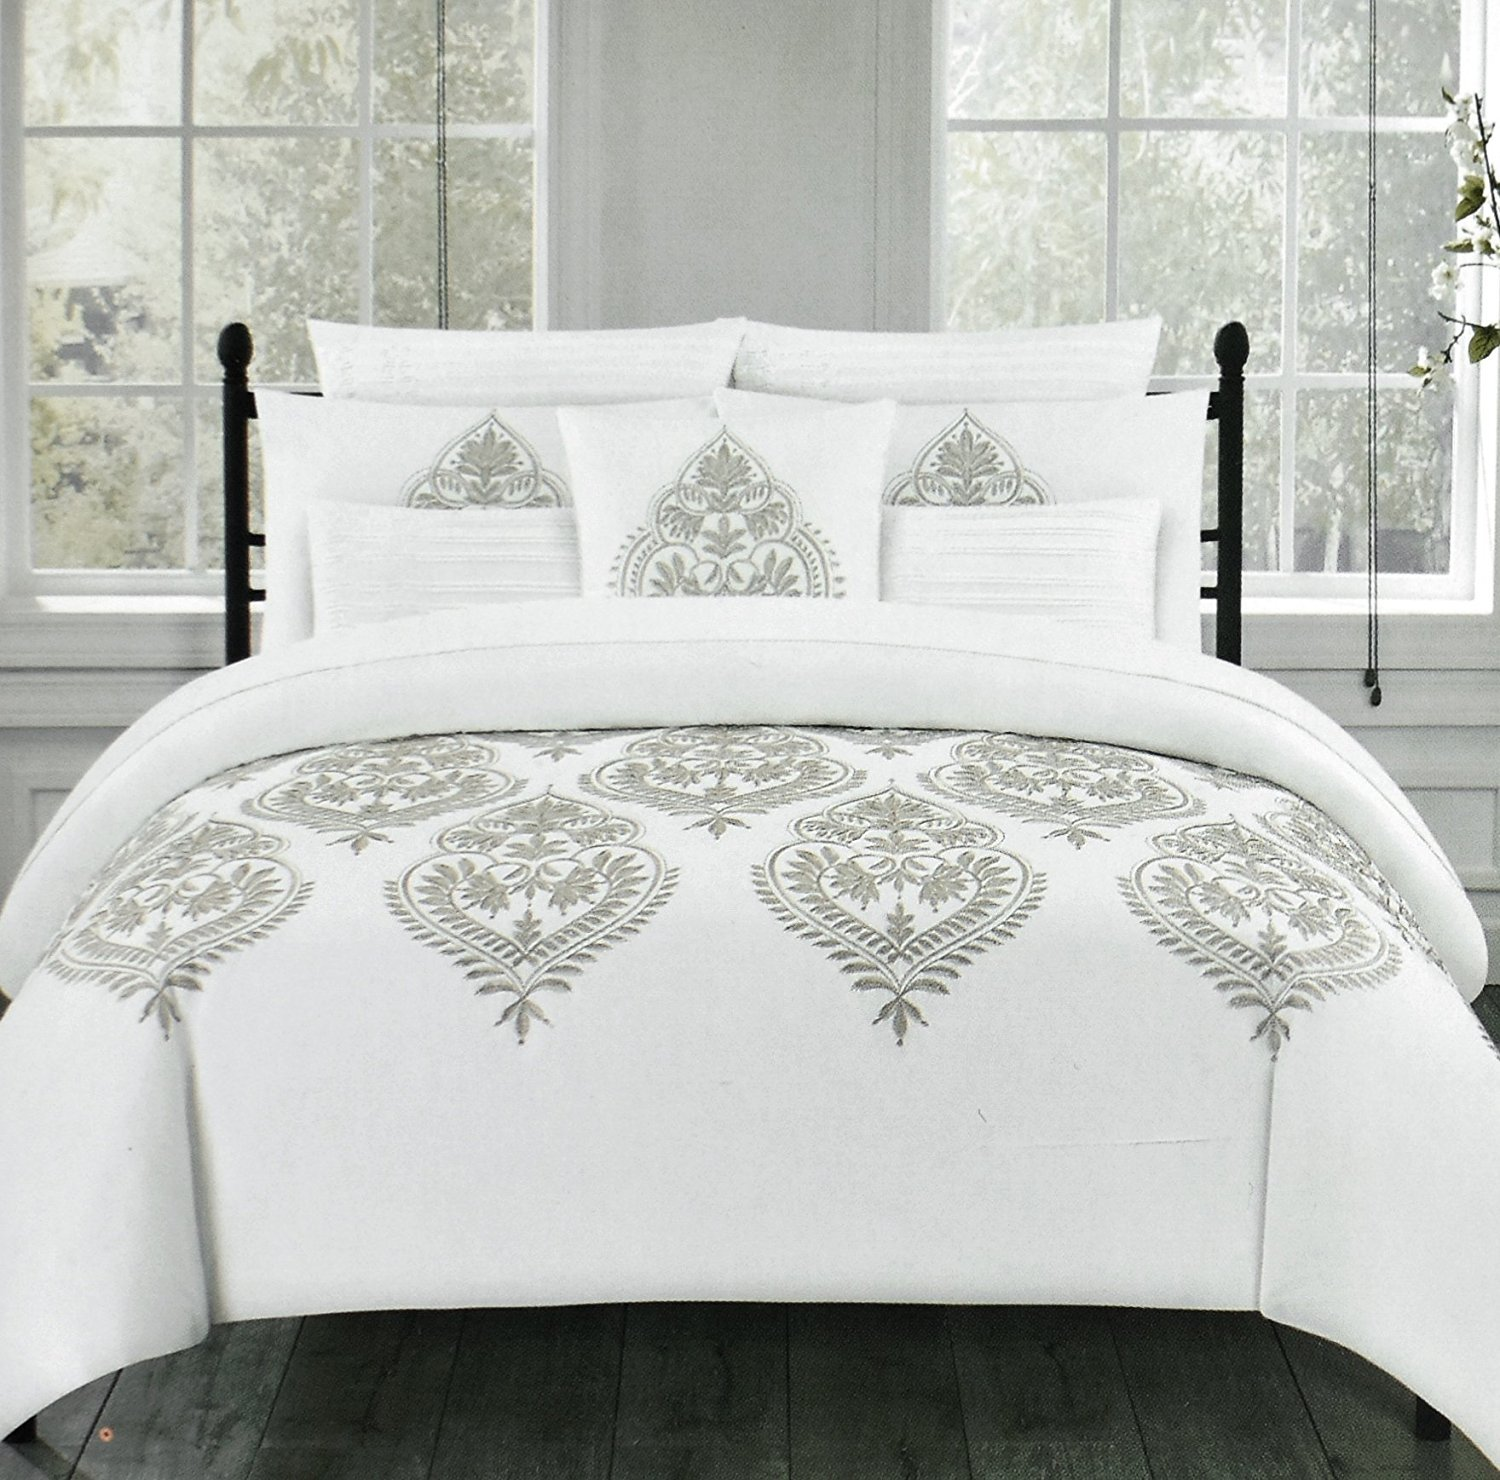 White Embroidered Duvet Cover Free Embroidery Patterns